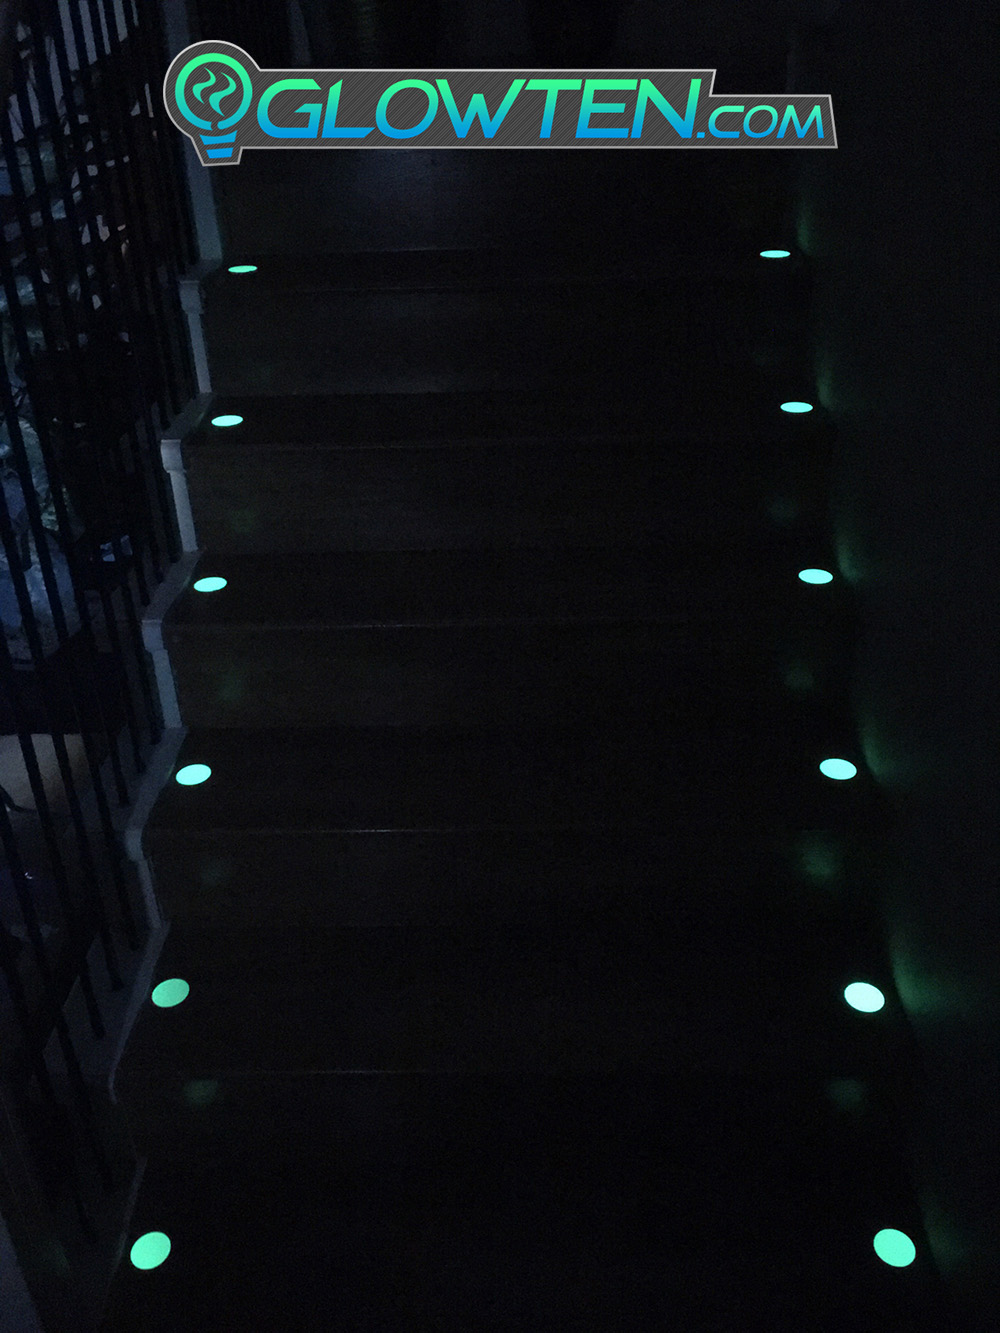 GLOWTEN.com - CIRCLE PLAQUE Glow in the Dark Stairs Guide Sign Round Eco Friendly Photoluminescent Material Aluminum Body Decor Seeing Assistance Impaired pic 5 picture photo cap preview pic 5